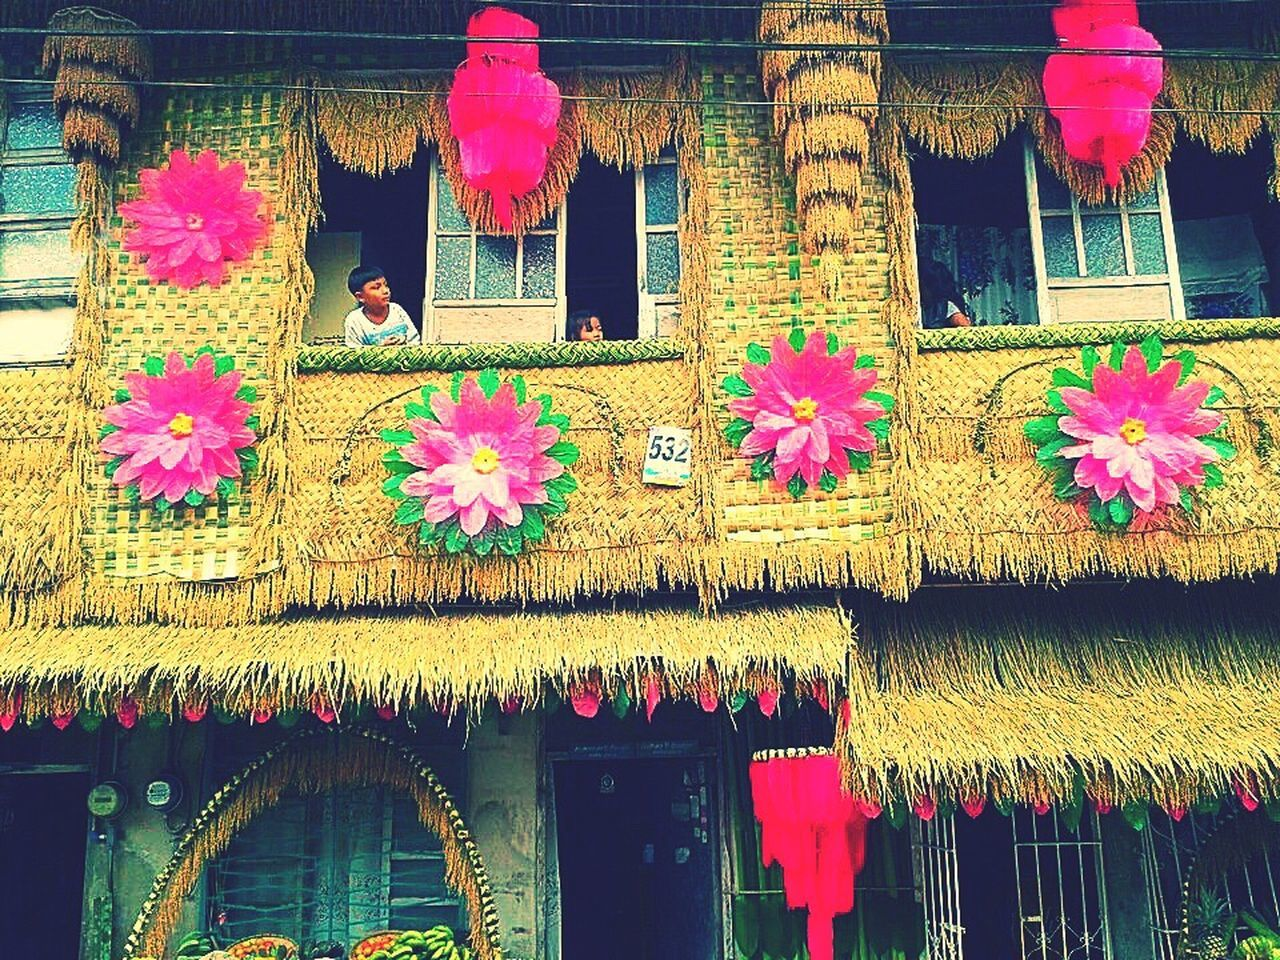 flower, architecture, built structure, window, building exterior, no people, day, multi colored, outdoors, freshness, close-up